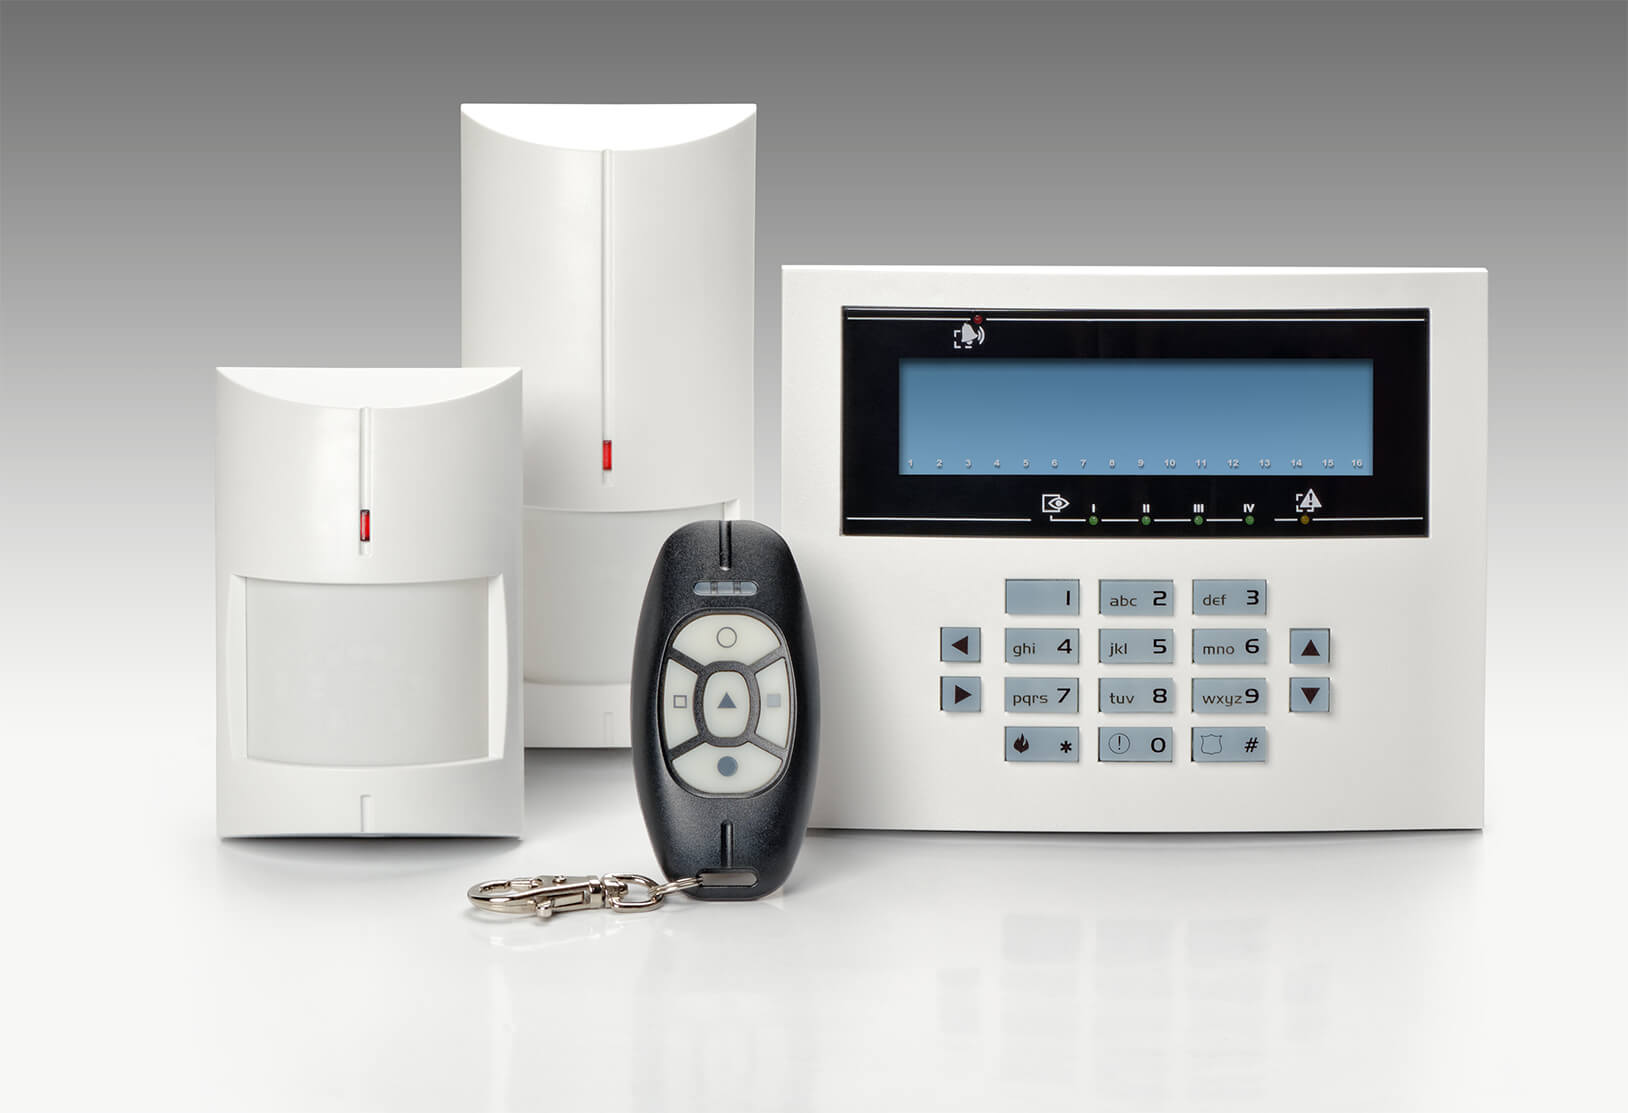 Commercial Burglar Alarms For Business in City of London EC4  - Local City of London EC4 burglar alarm company.Call 02078872244 - Dedicated to Safety & Security. Companies, shops and homes ..